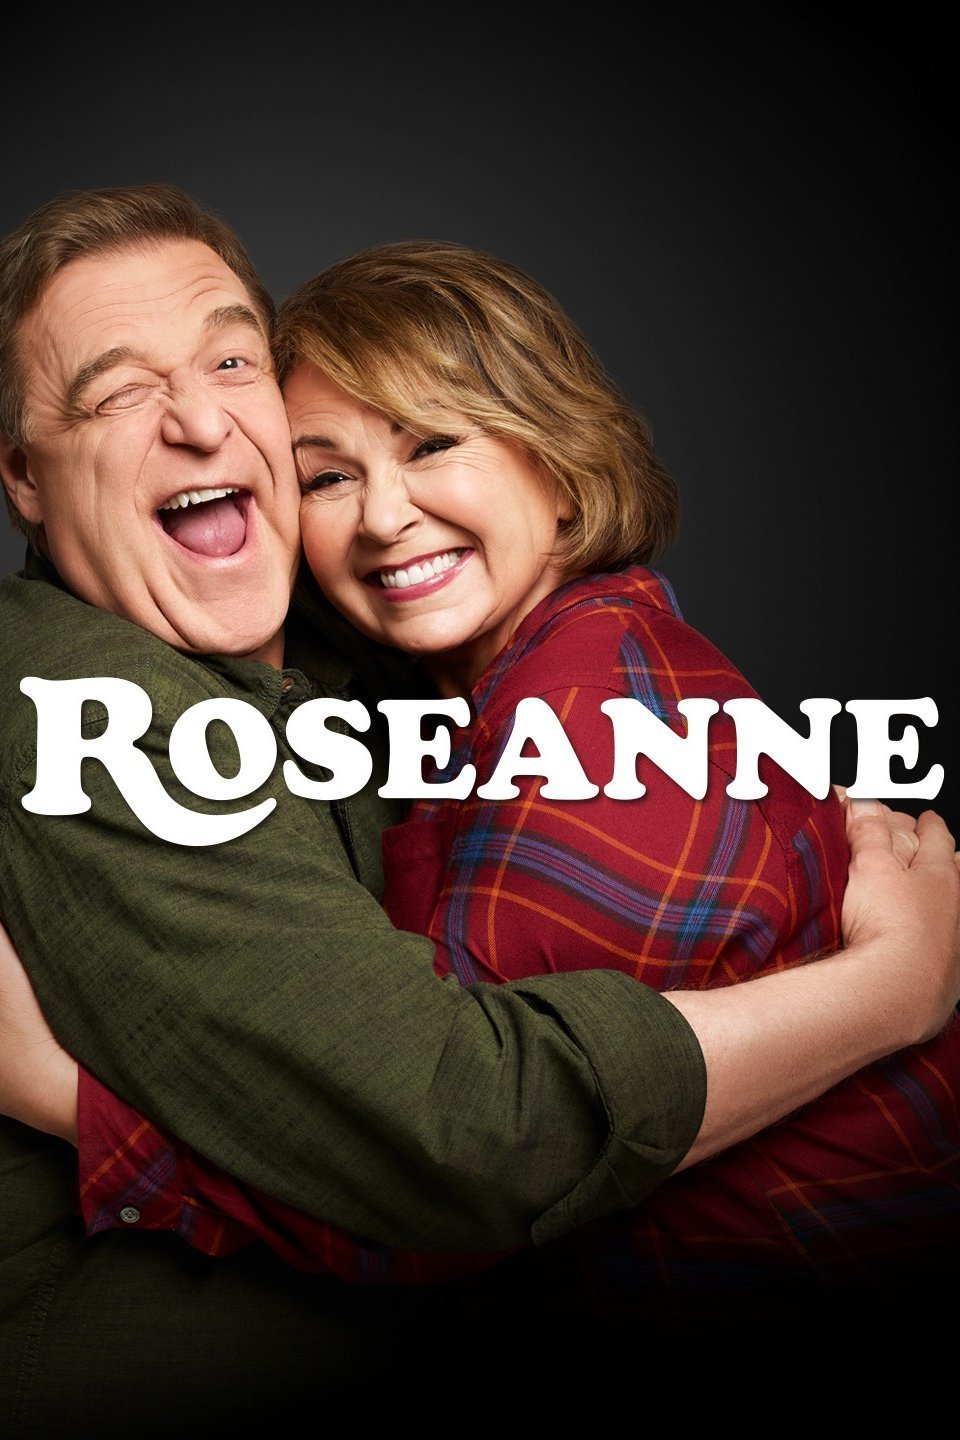 abc network announces roseanne spinoff tv series without creator roseanne barr